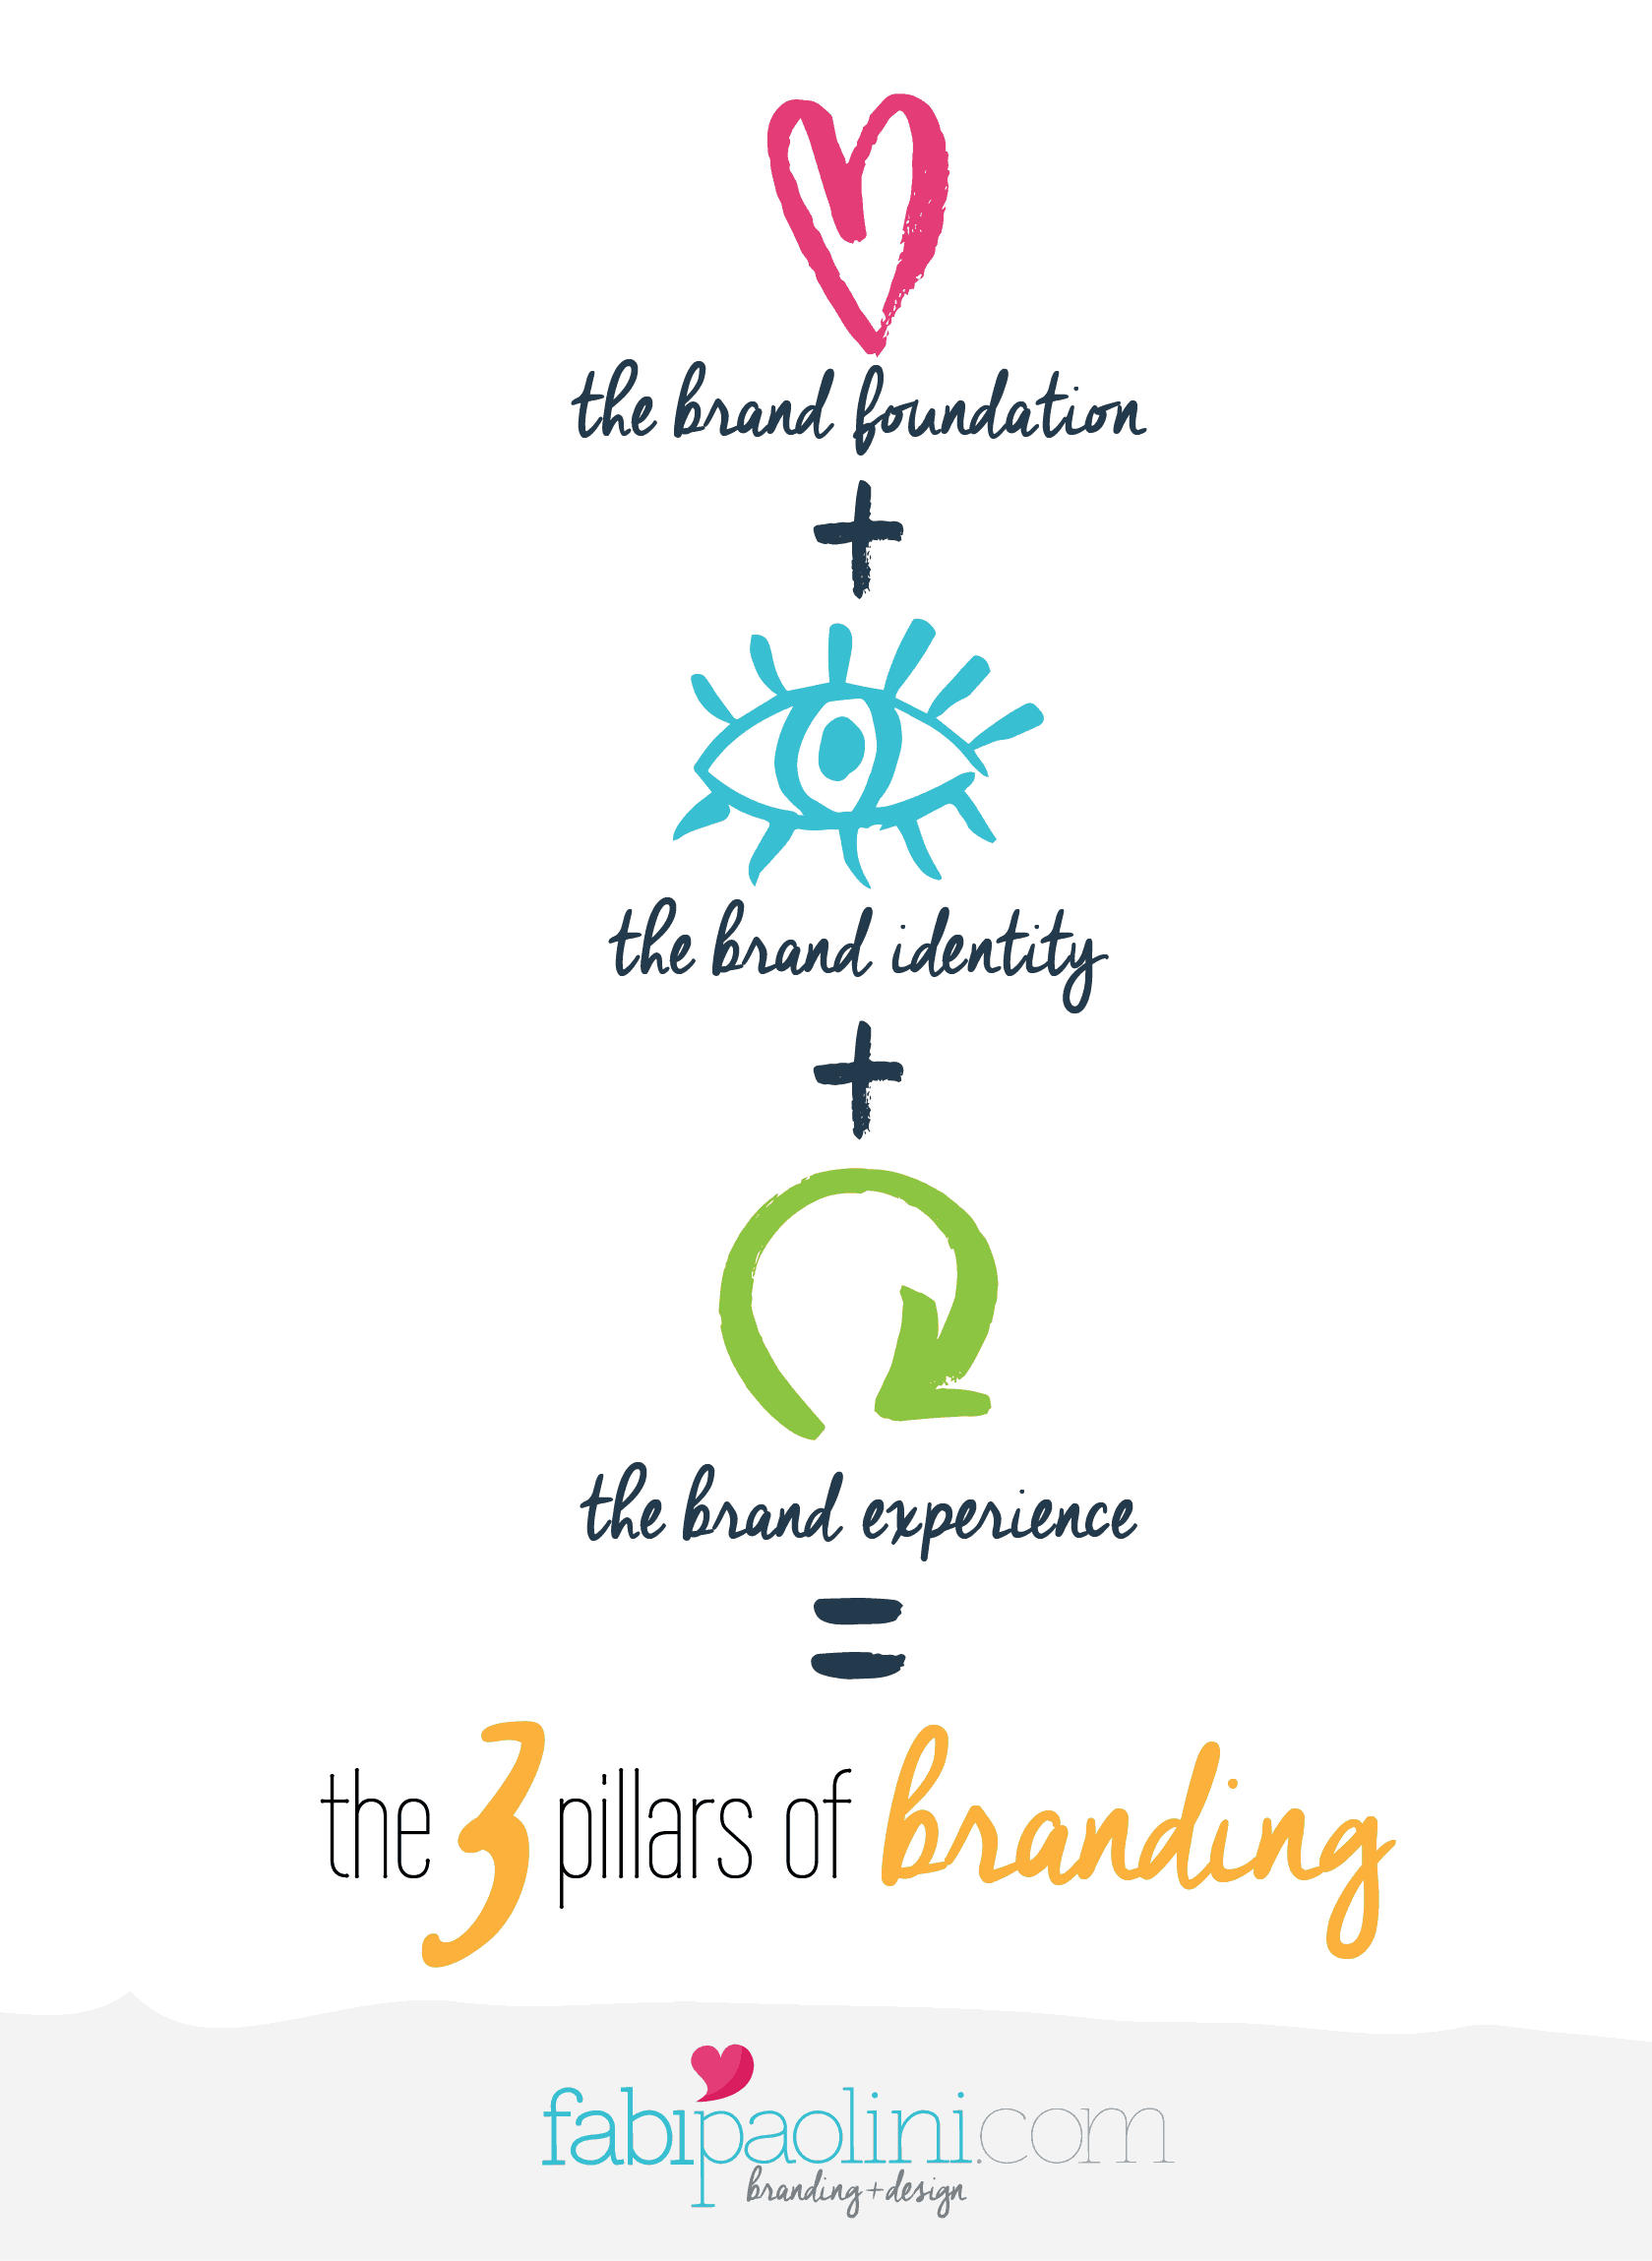 What is branding? The 3 pillars of branding: brand foundation, brand identity and brand experience